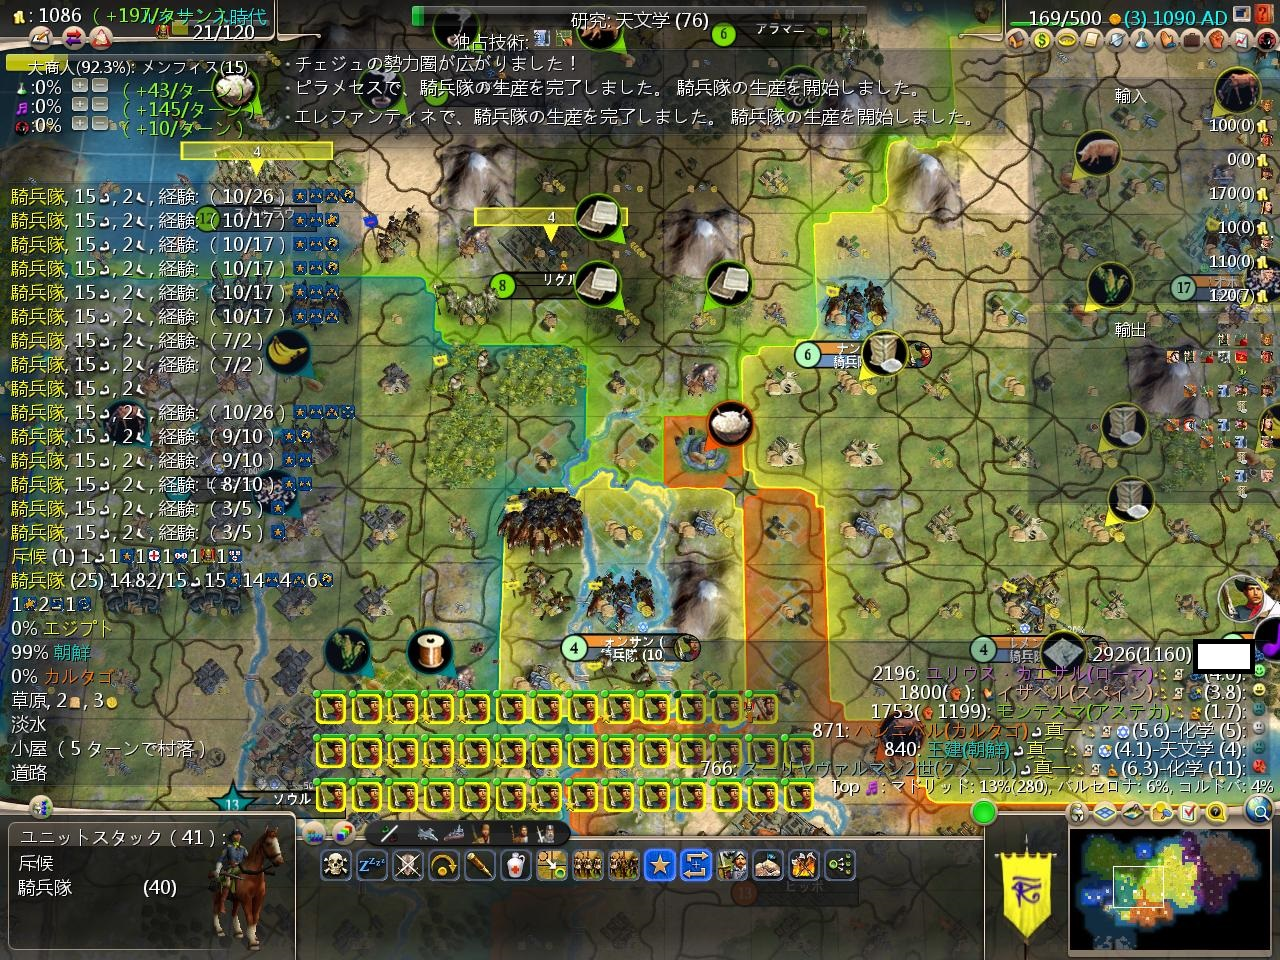 Civ4ScreenShot2215.JPG